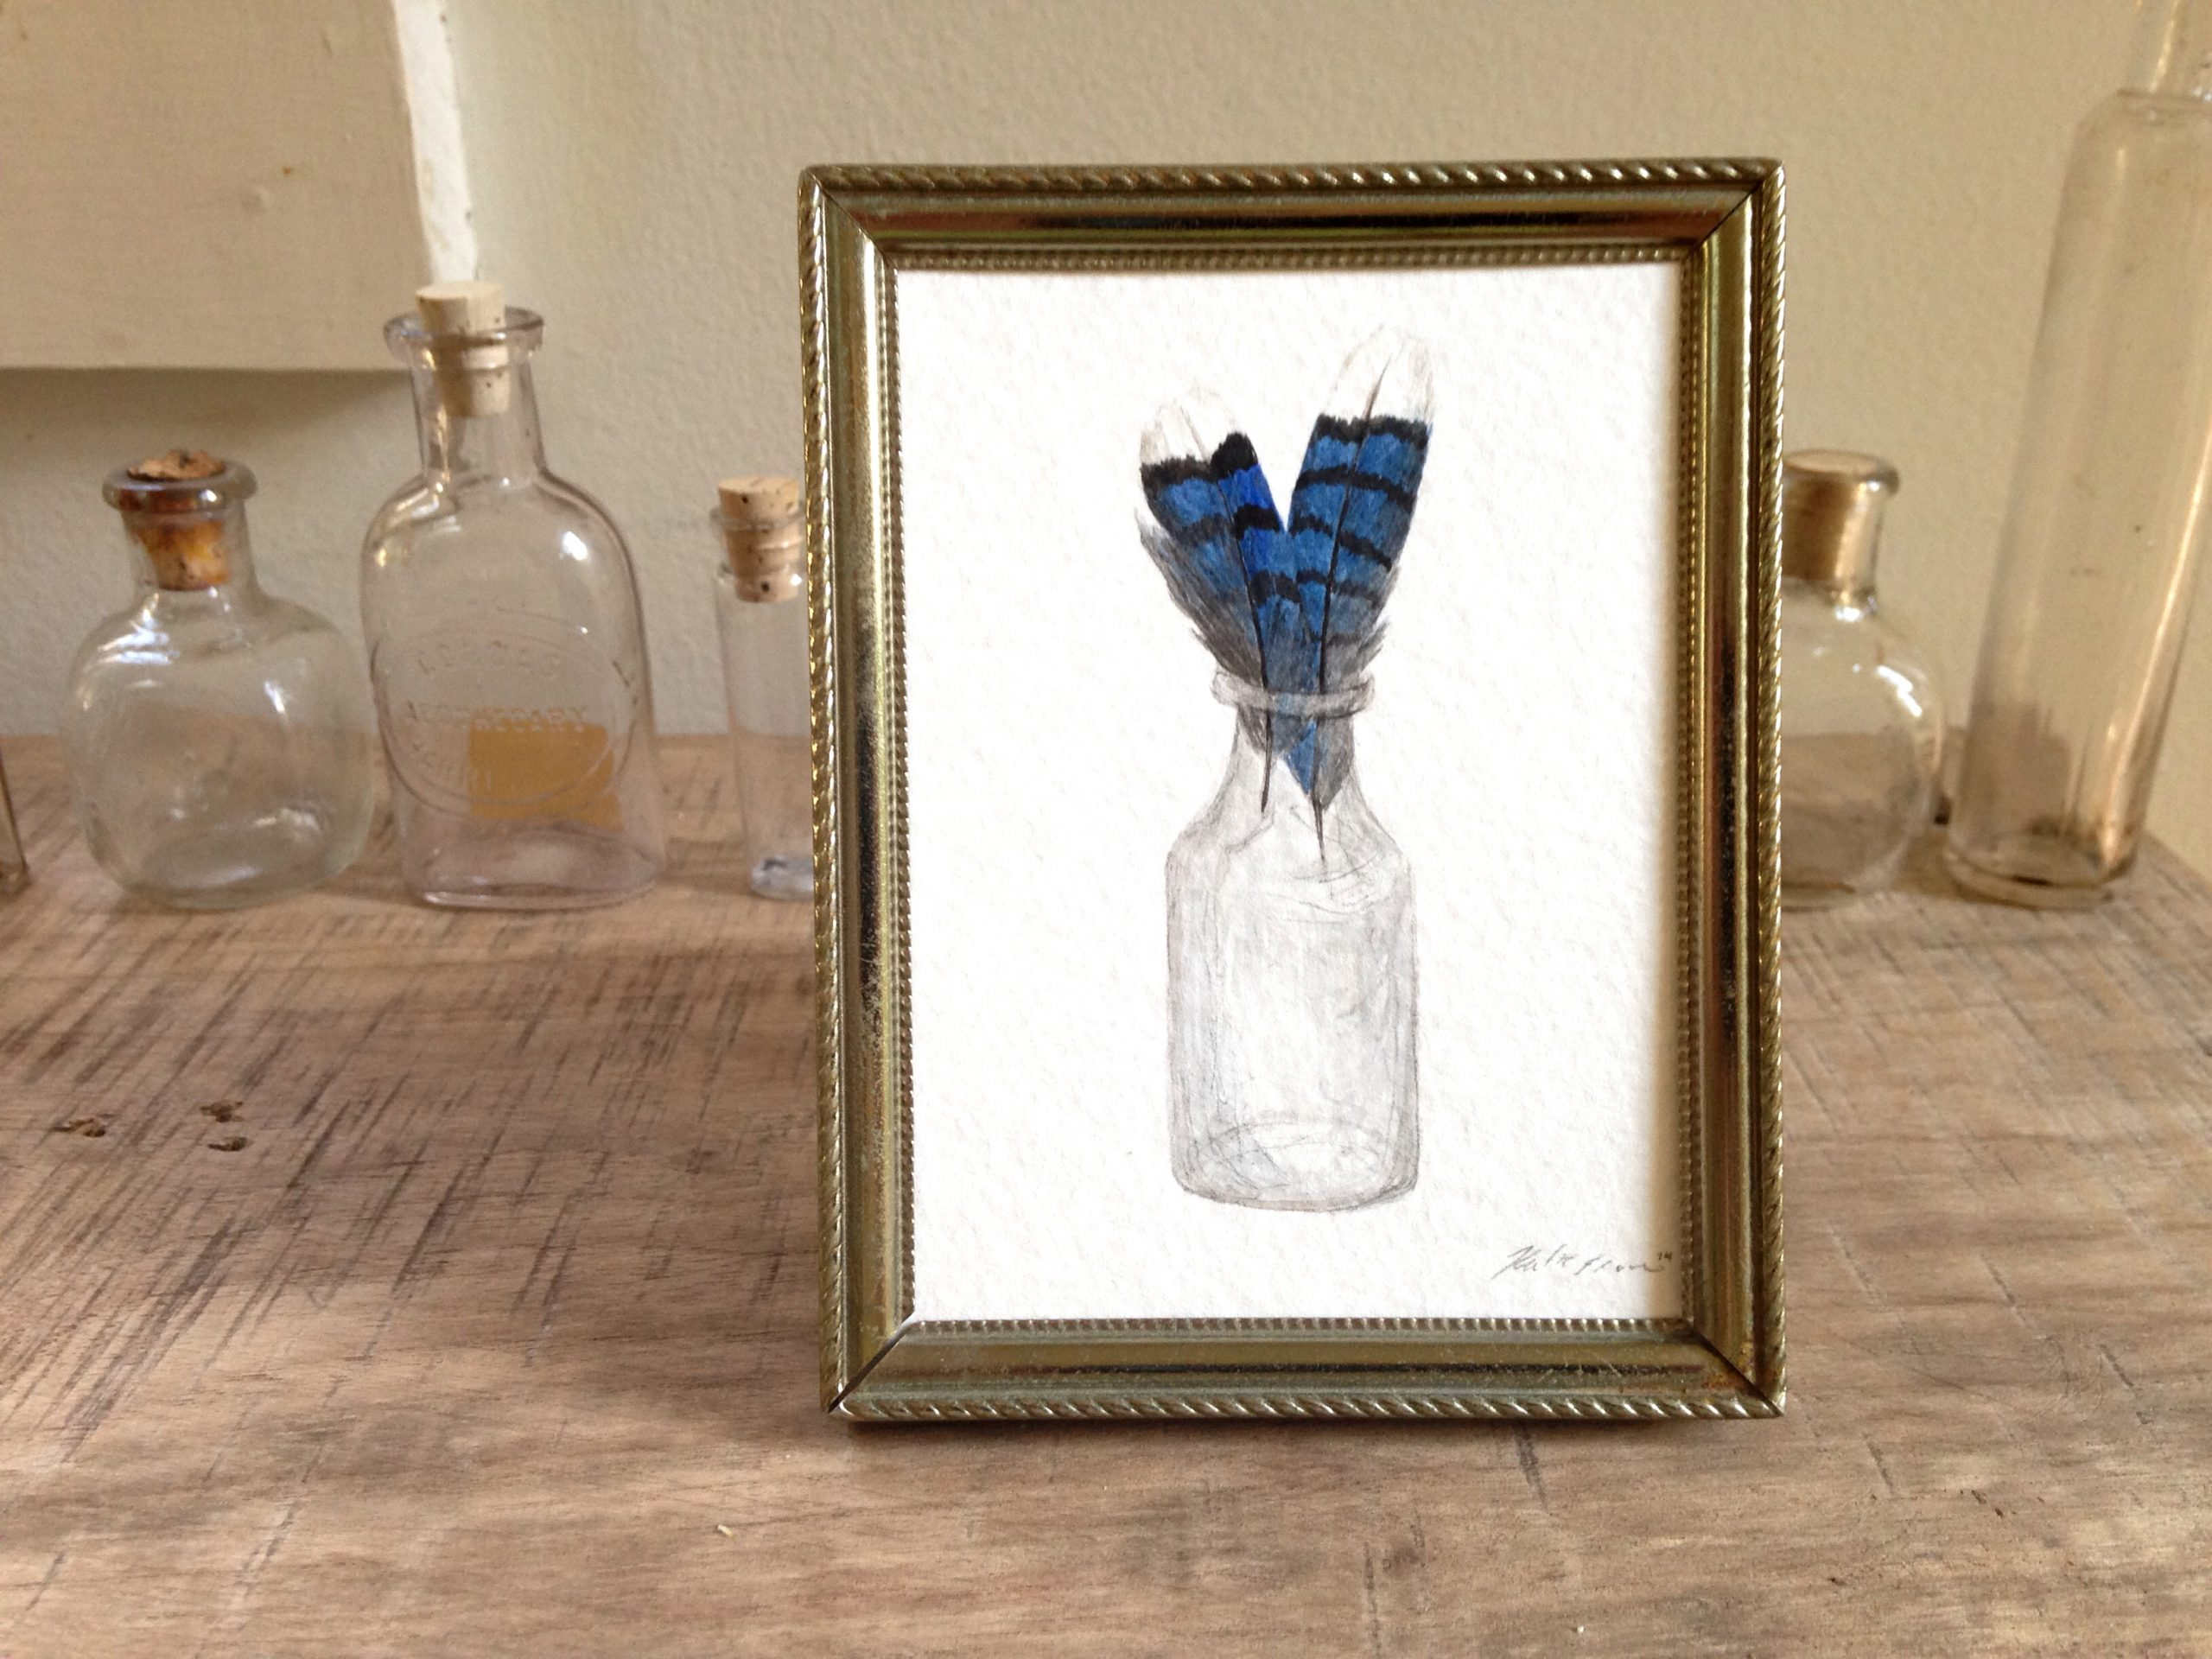 Blue Jay Feathers In A Glass Jar, Original Bird Feather Watercolor Painting